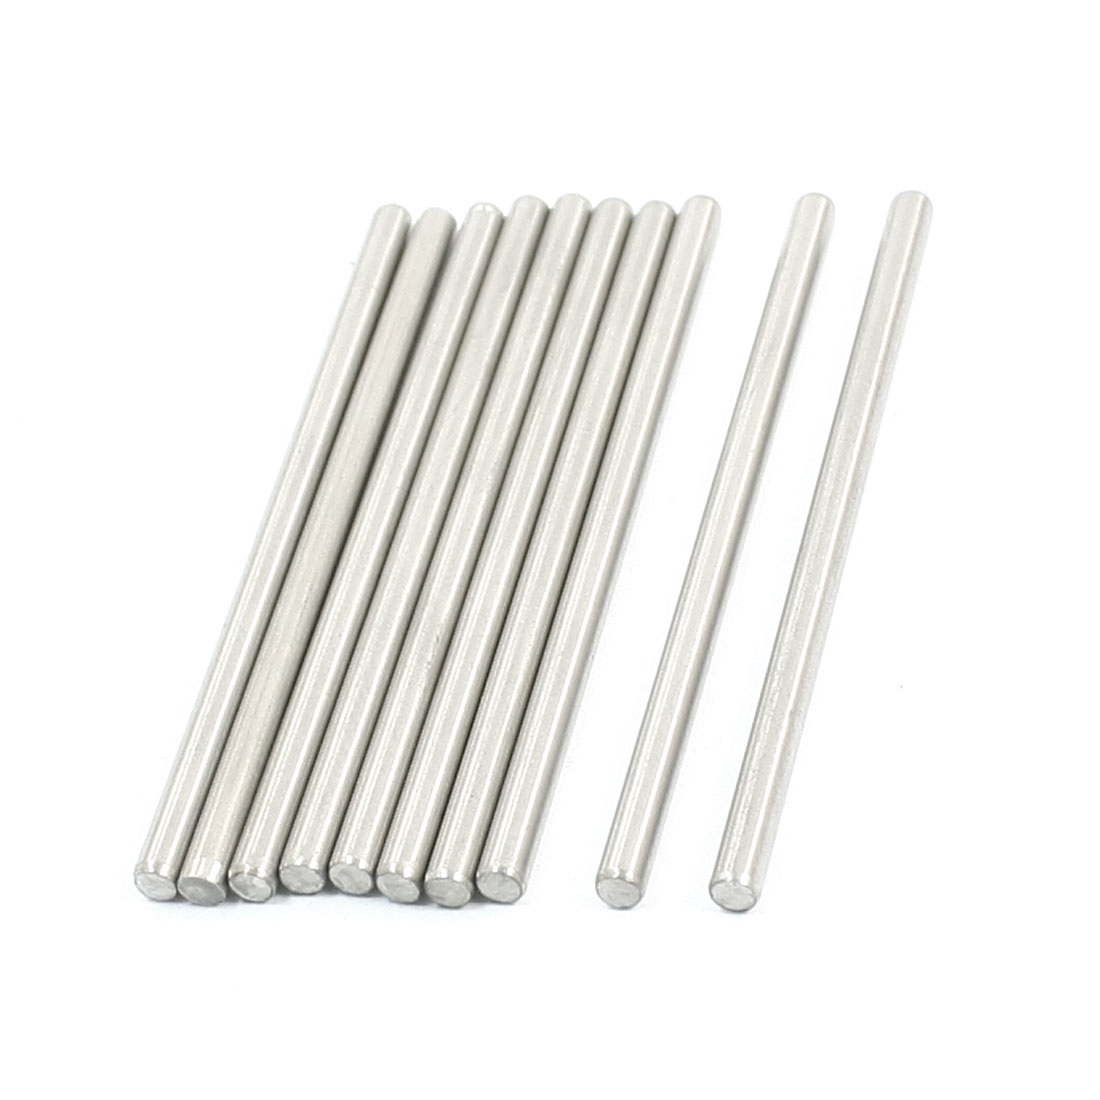 10 Pcs RC Toy Car Model Part Stainless Steel Round Rods Axles 3mm x 60mm